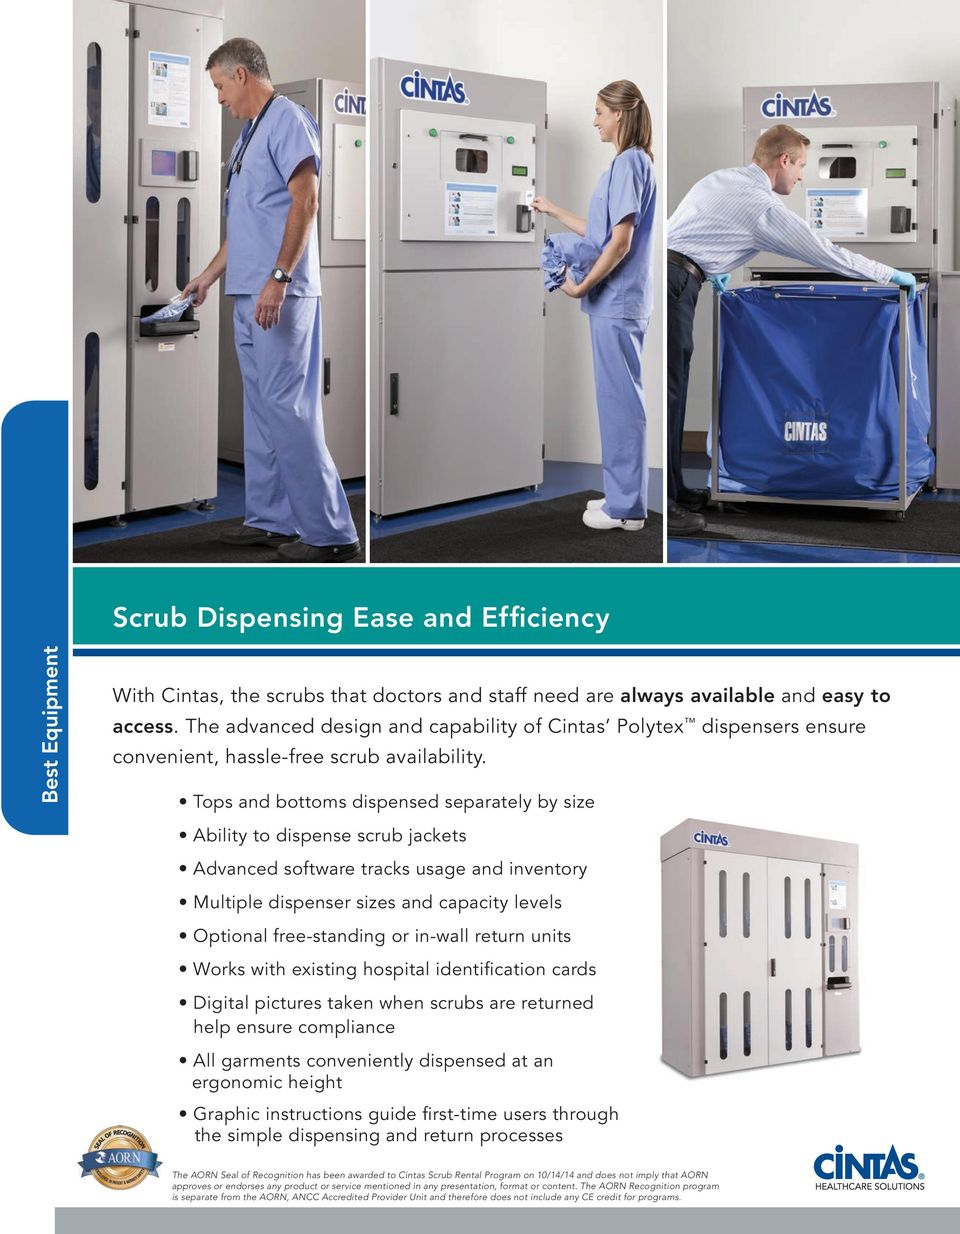 Tops and bottoms dispensed separately by size Ability to dispense scrub jackets Advanced software tracks usage and inventory Multiple dispenser sizes and capacity levels Optional free-standing or